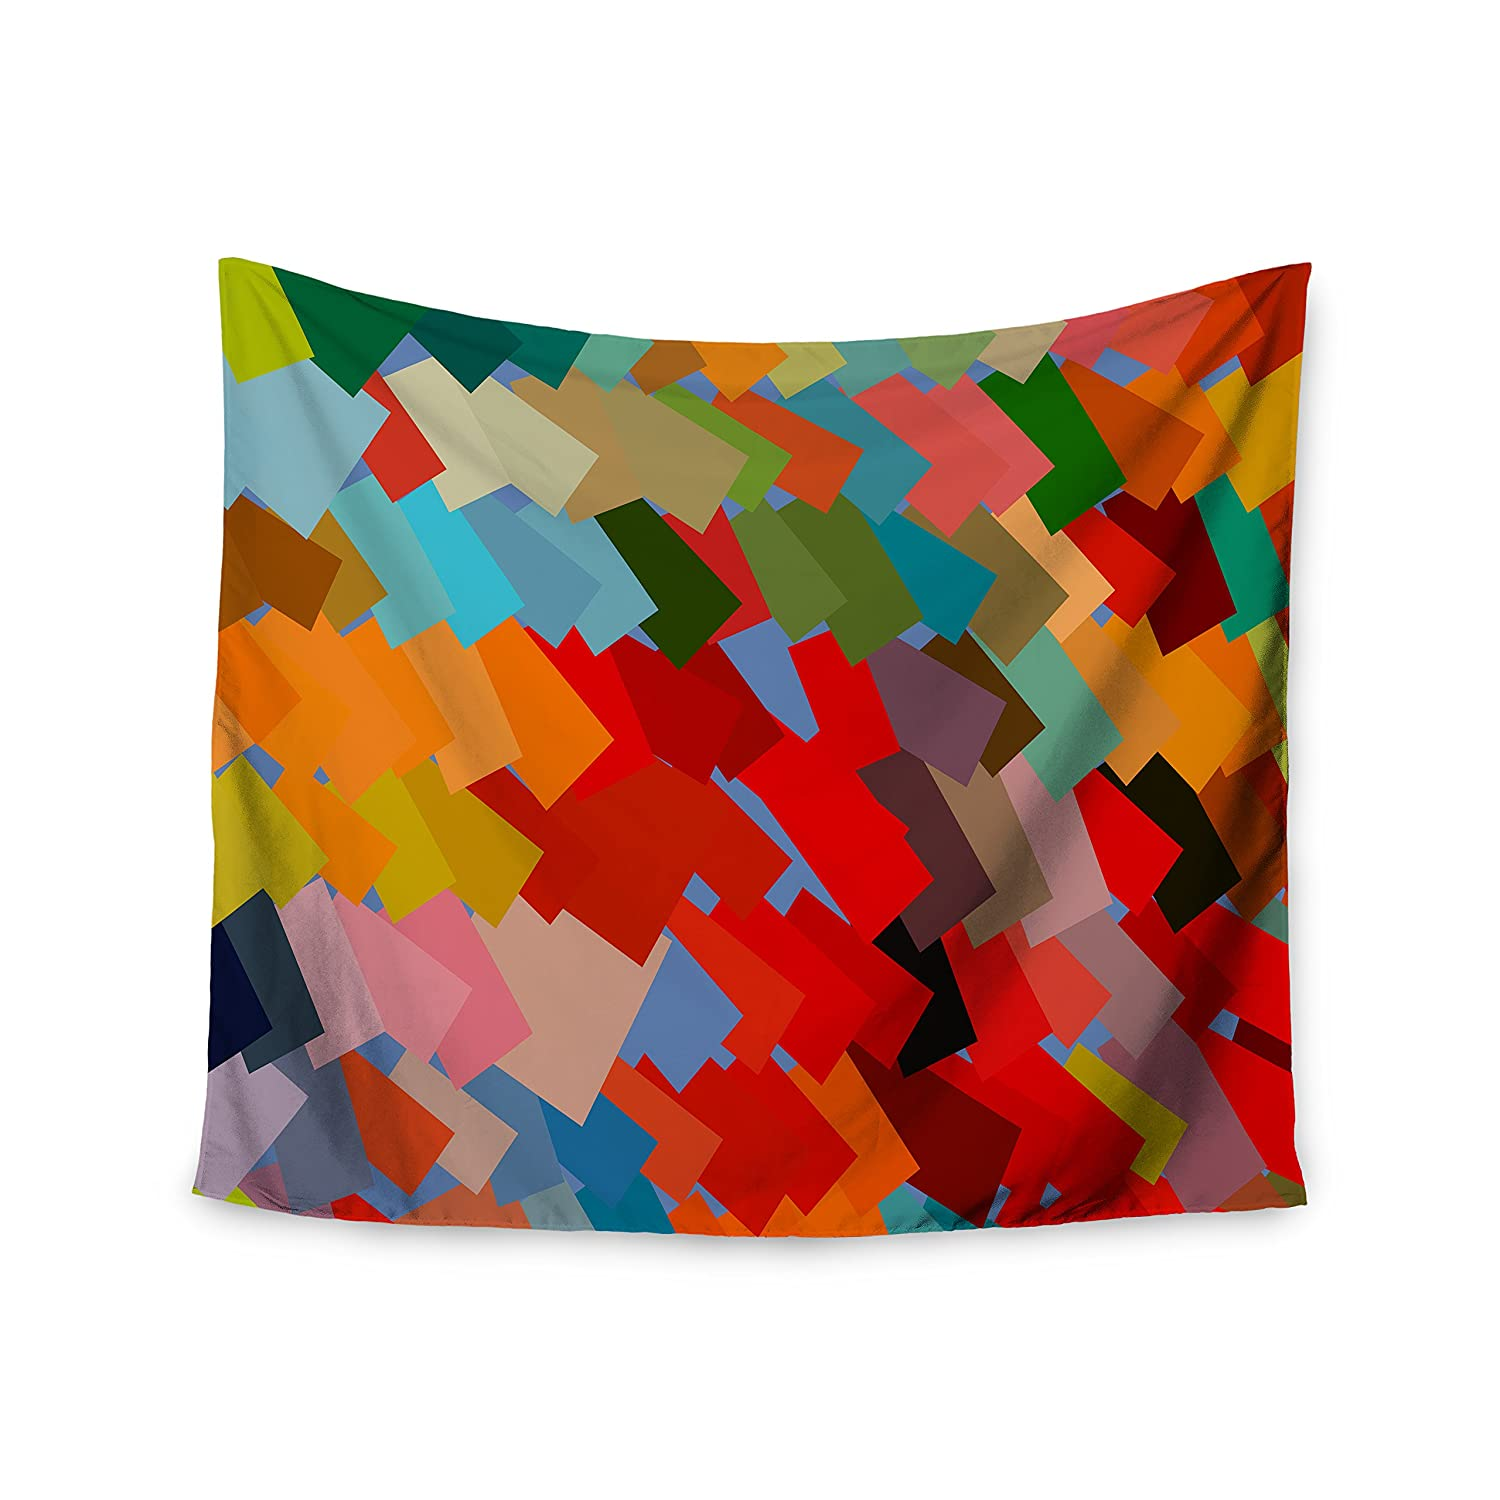 Kess InHouse Matthias Hennig Playful Rectangles Red Orange Wall Tapestry, 51' x 60'